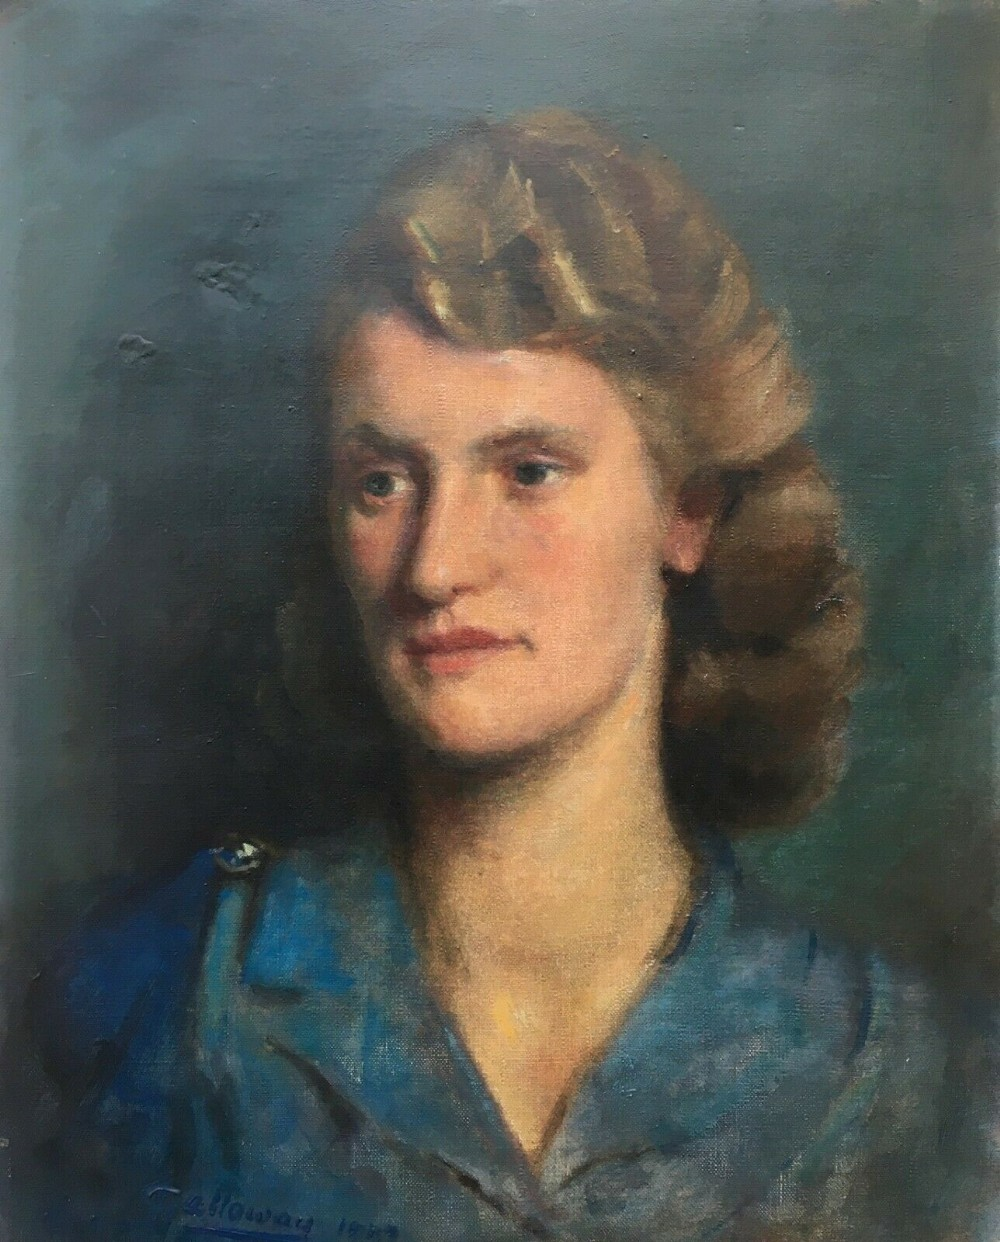 vincent galloway 18941977 signed original ww2 period english framed oil painting on canvas portrait of lady in a blue dress